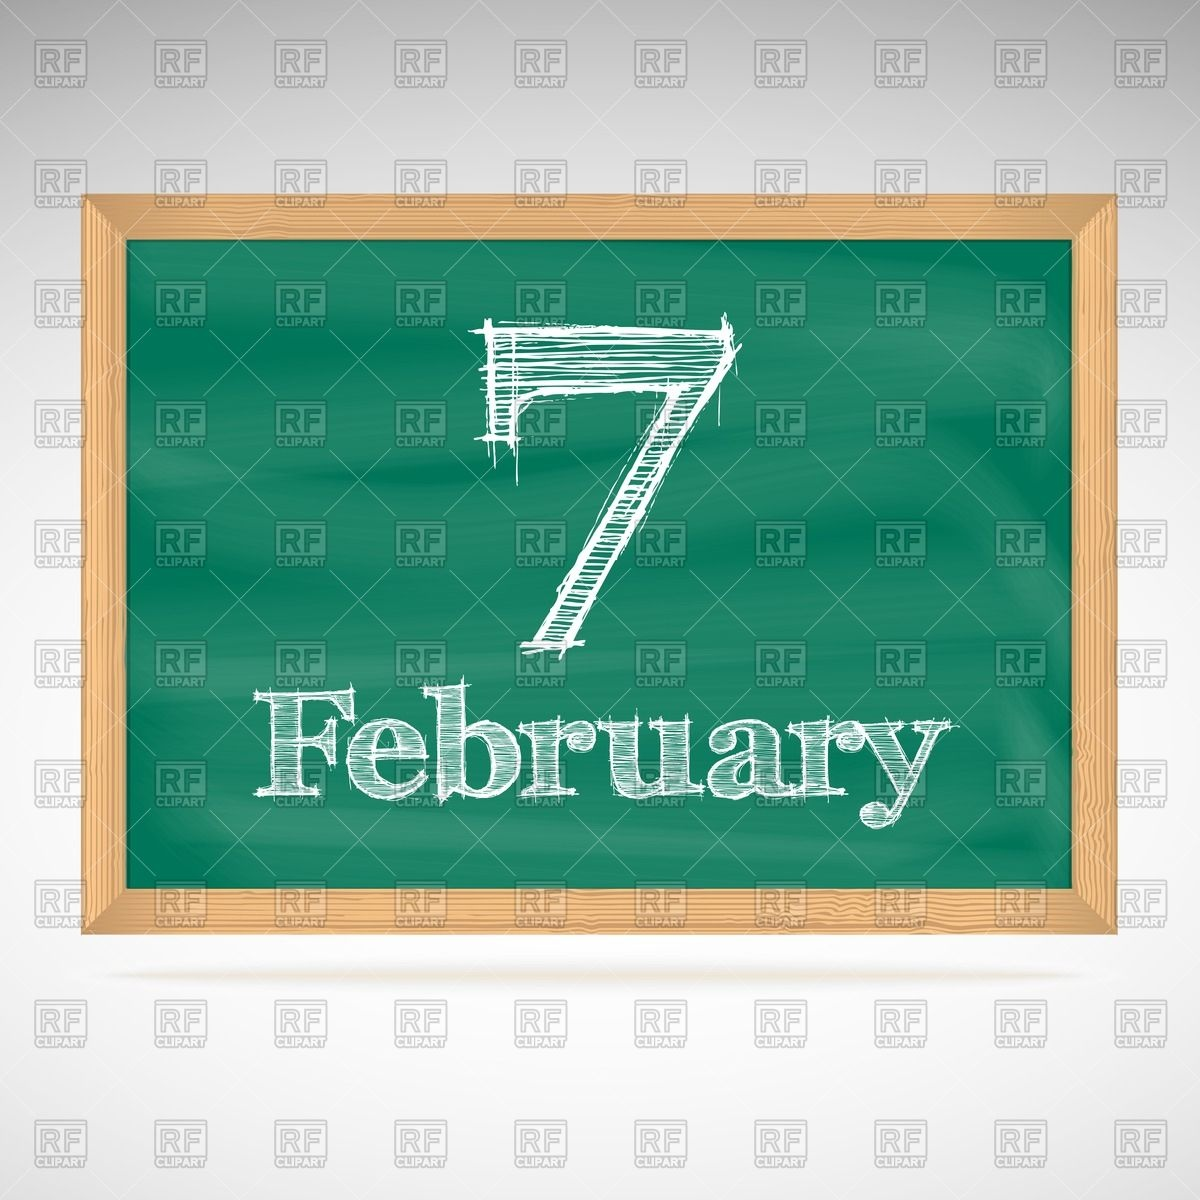 February 7 calendar clipart graphic black and white download School chalkboard calendar with inscription in chalk February 7 ... graphic black and white download